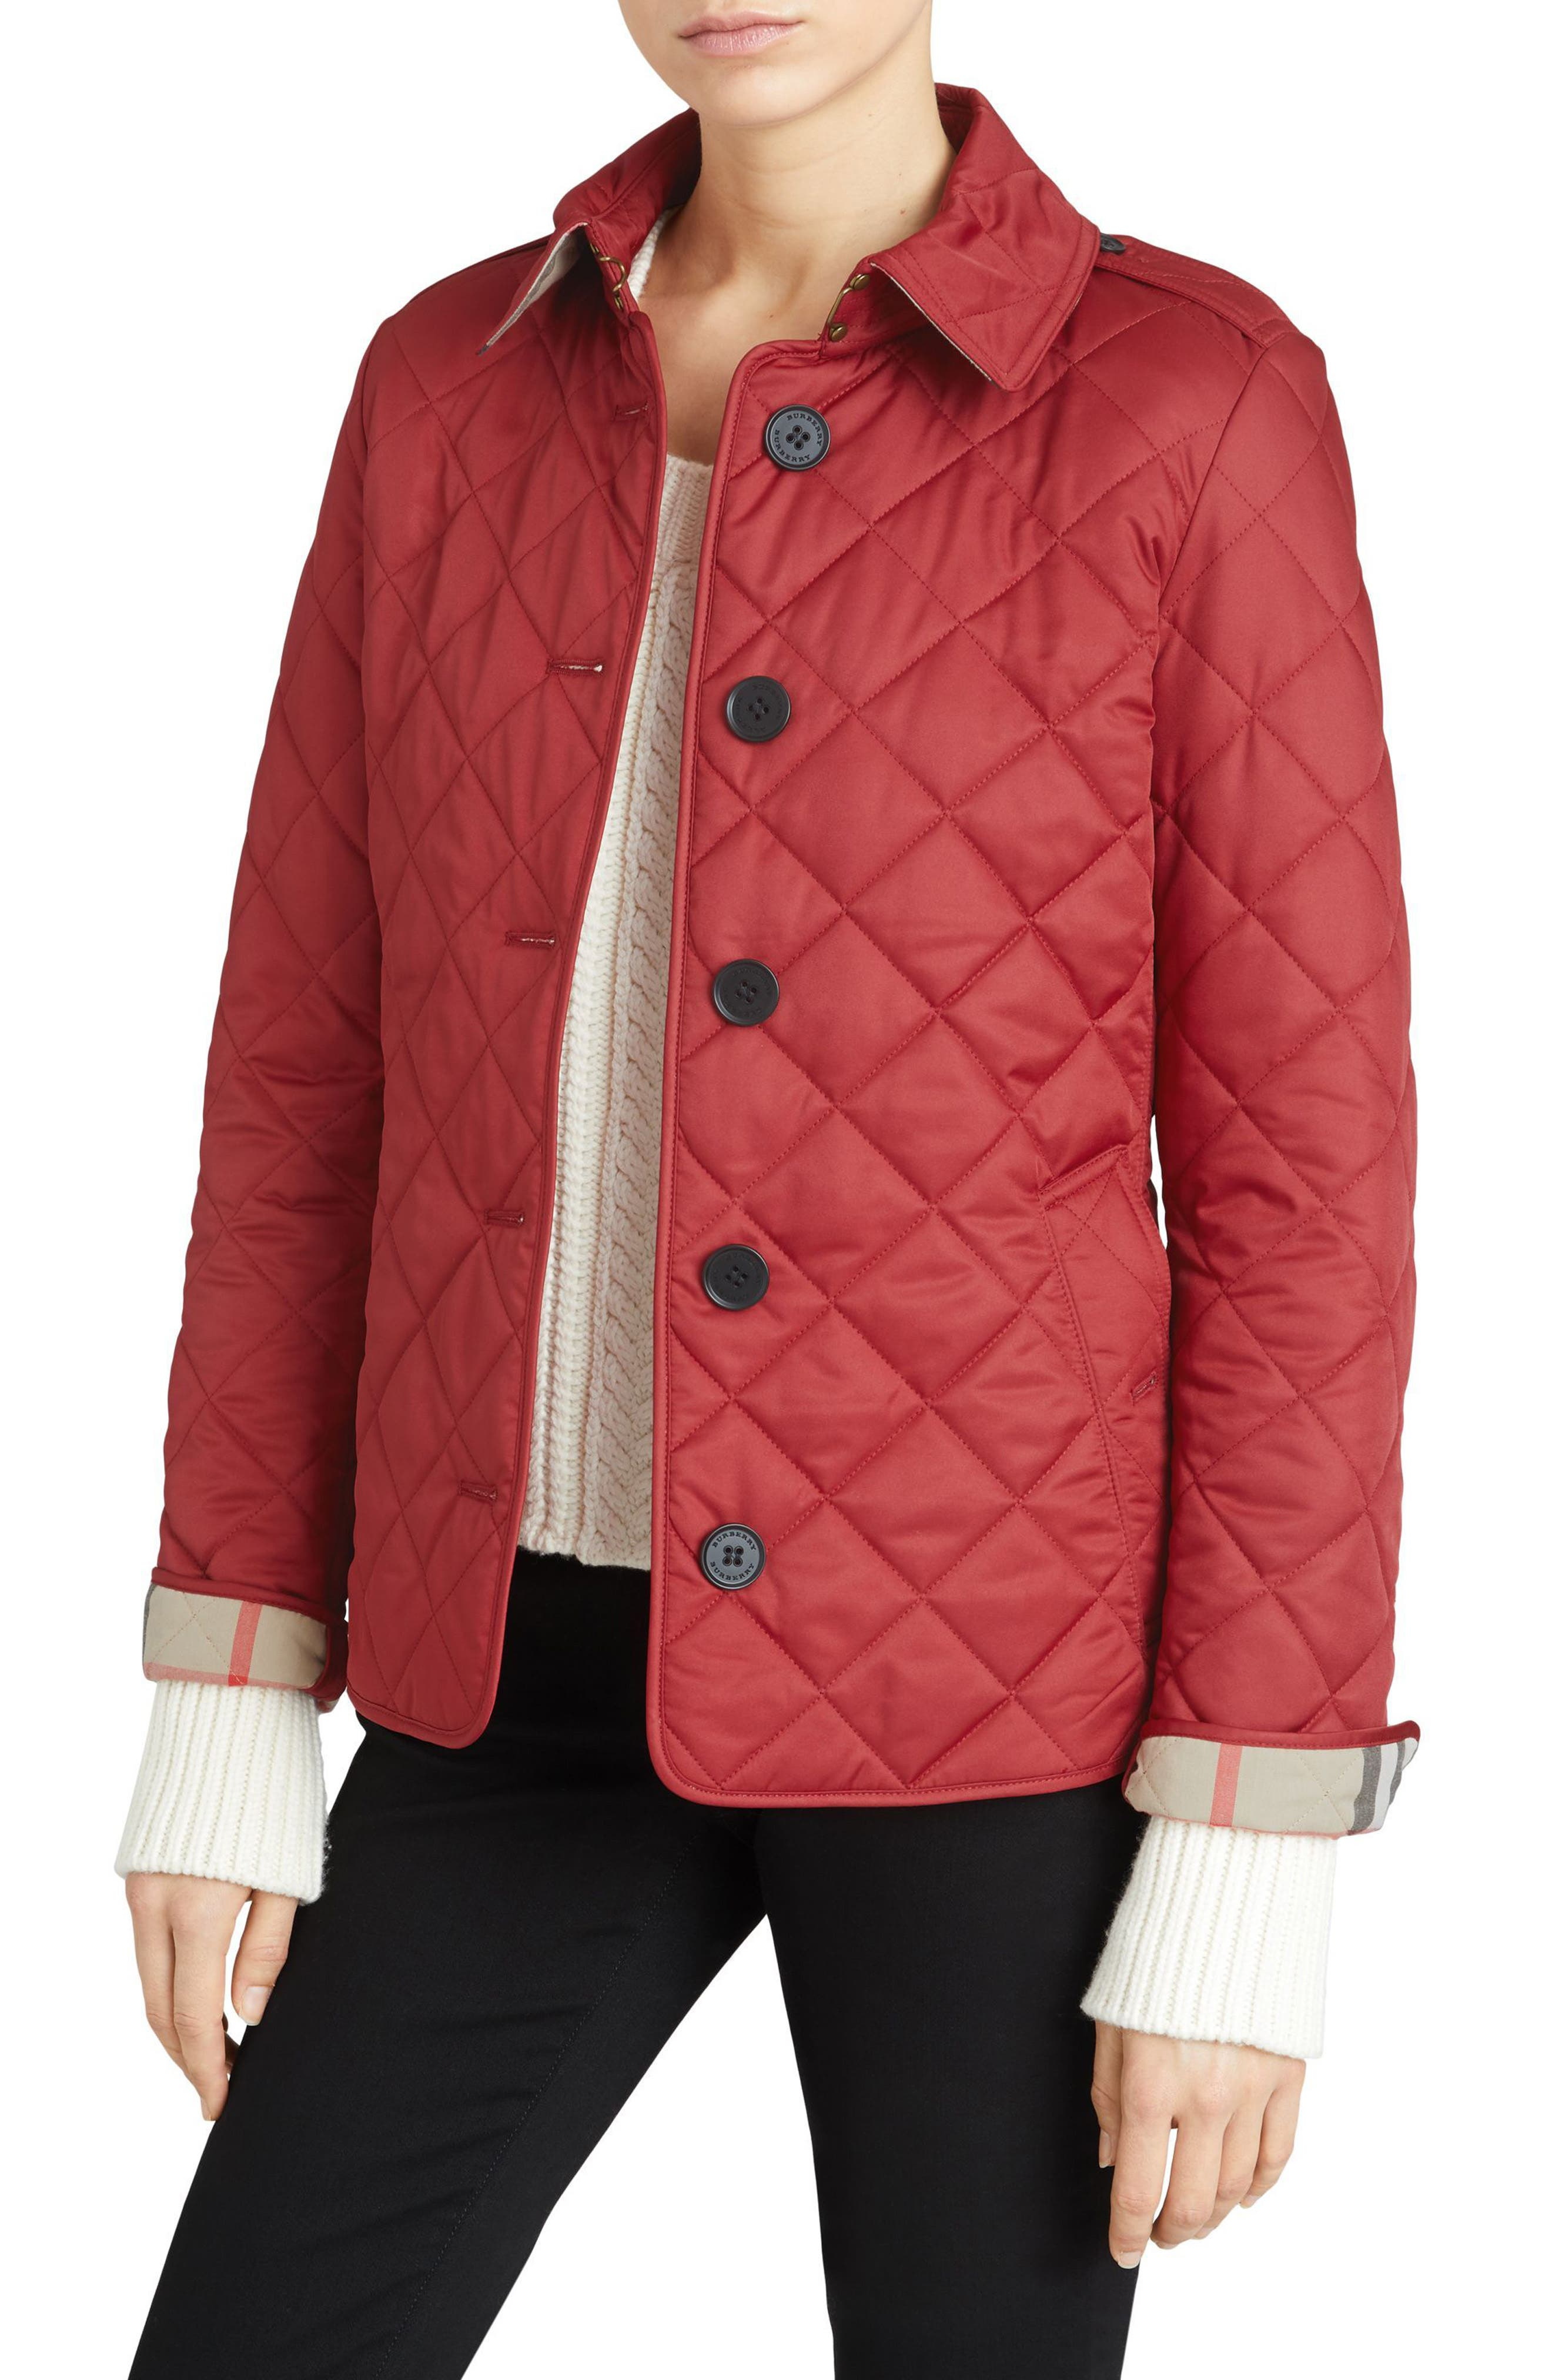 Frankby Quilted Jacket,                         Main,                         color, PARADE RED